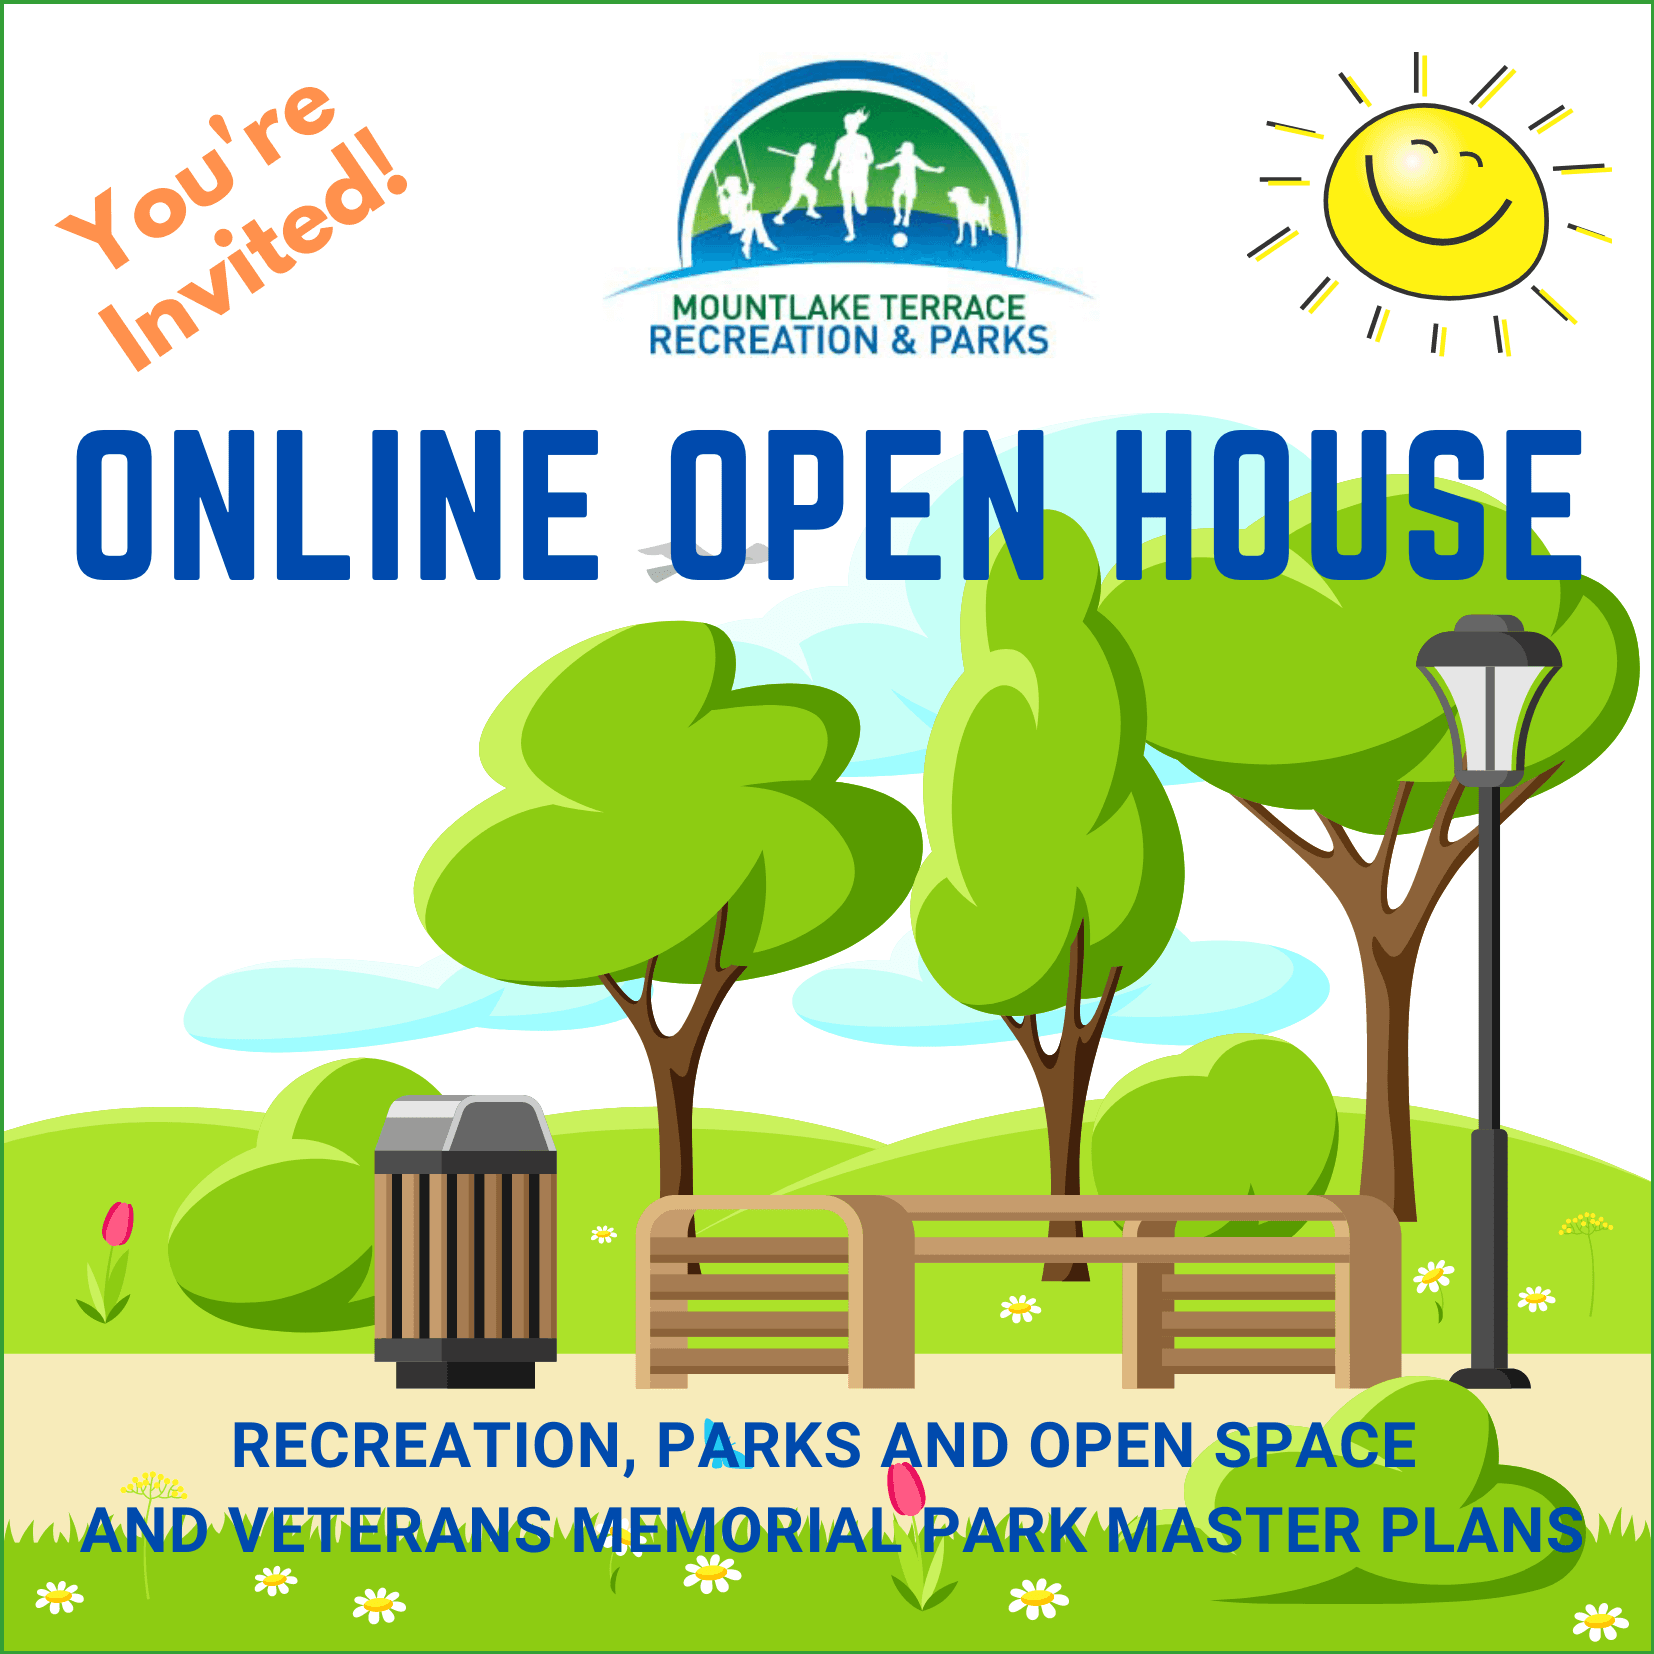 Online Open House for Recreation, Parks and Open Space and Veterans Park Master Plans